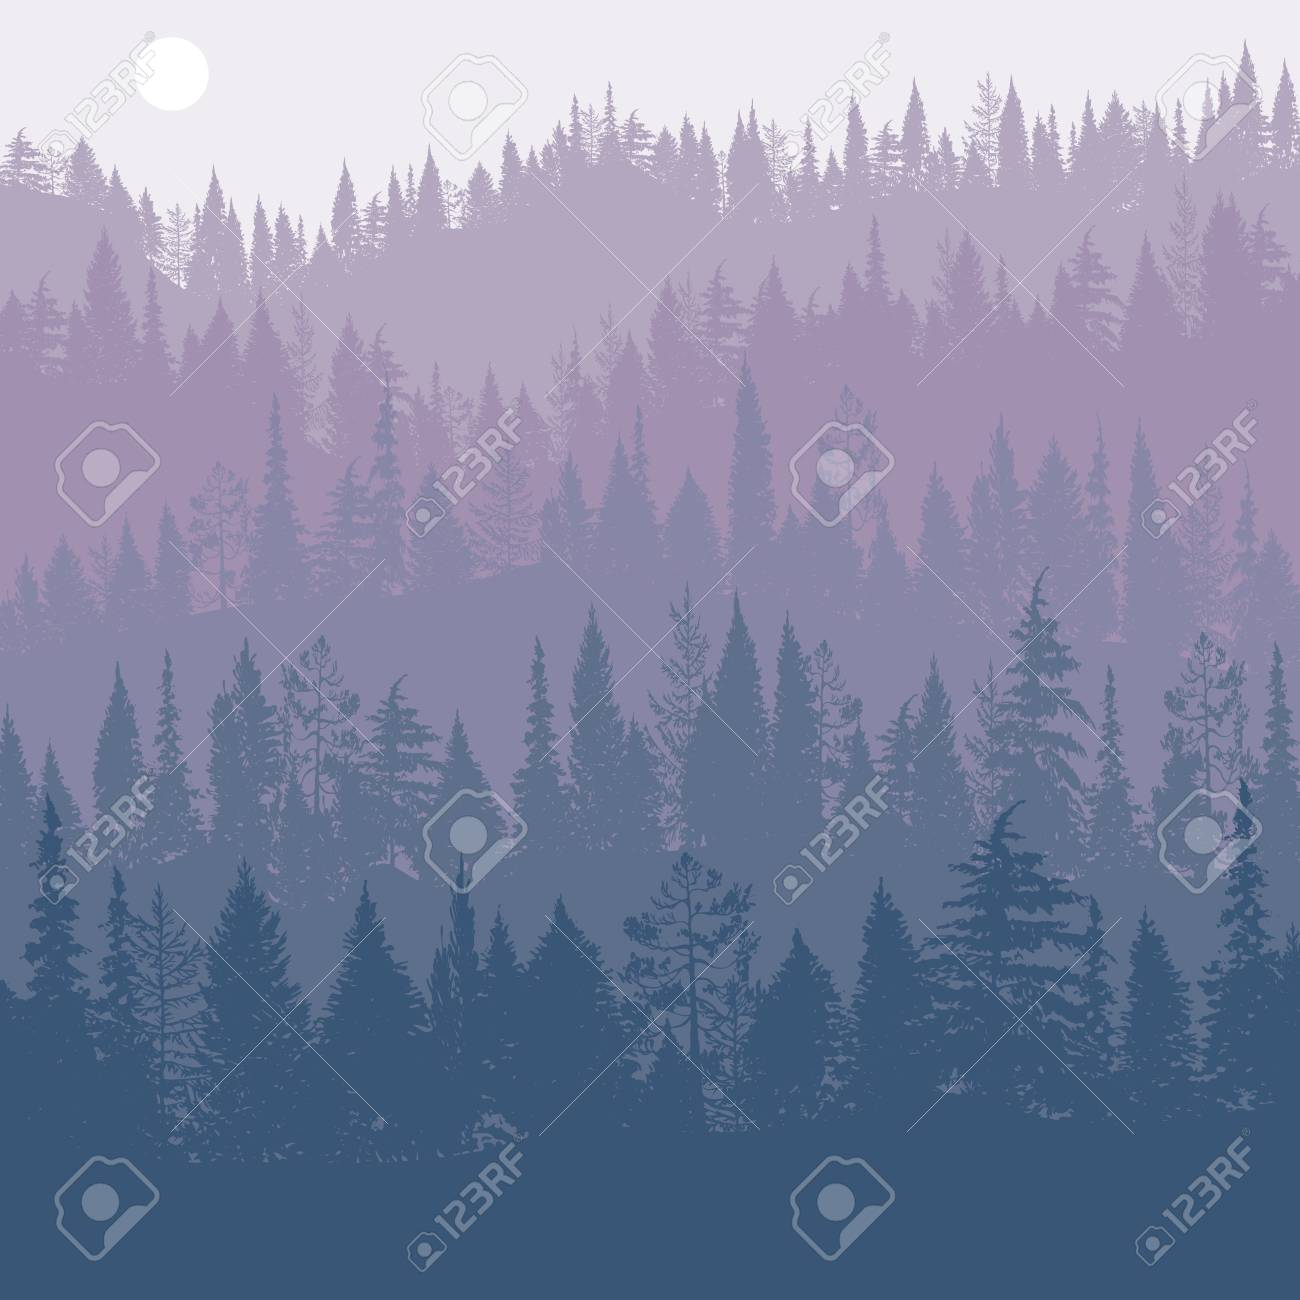 vector landscape with pine trees - 93007710